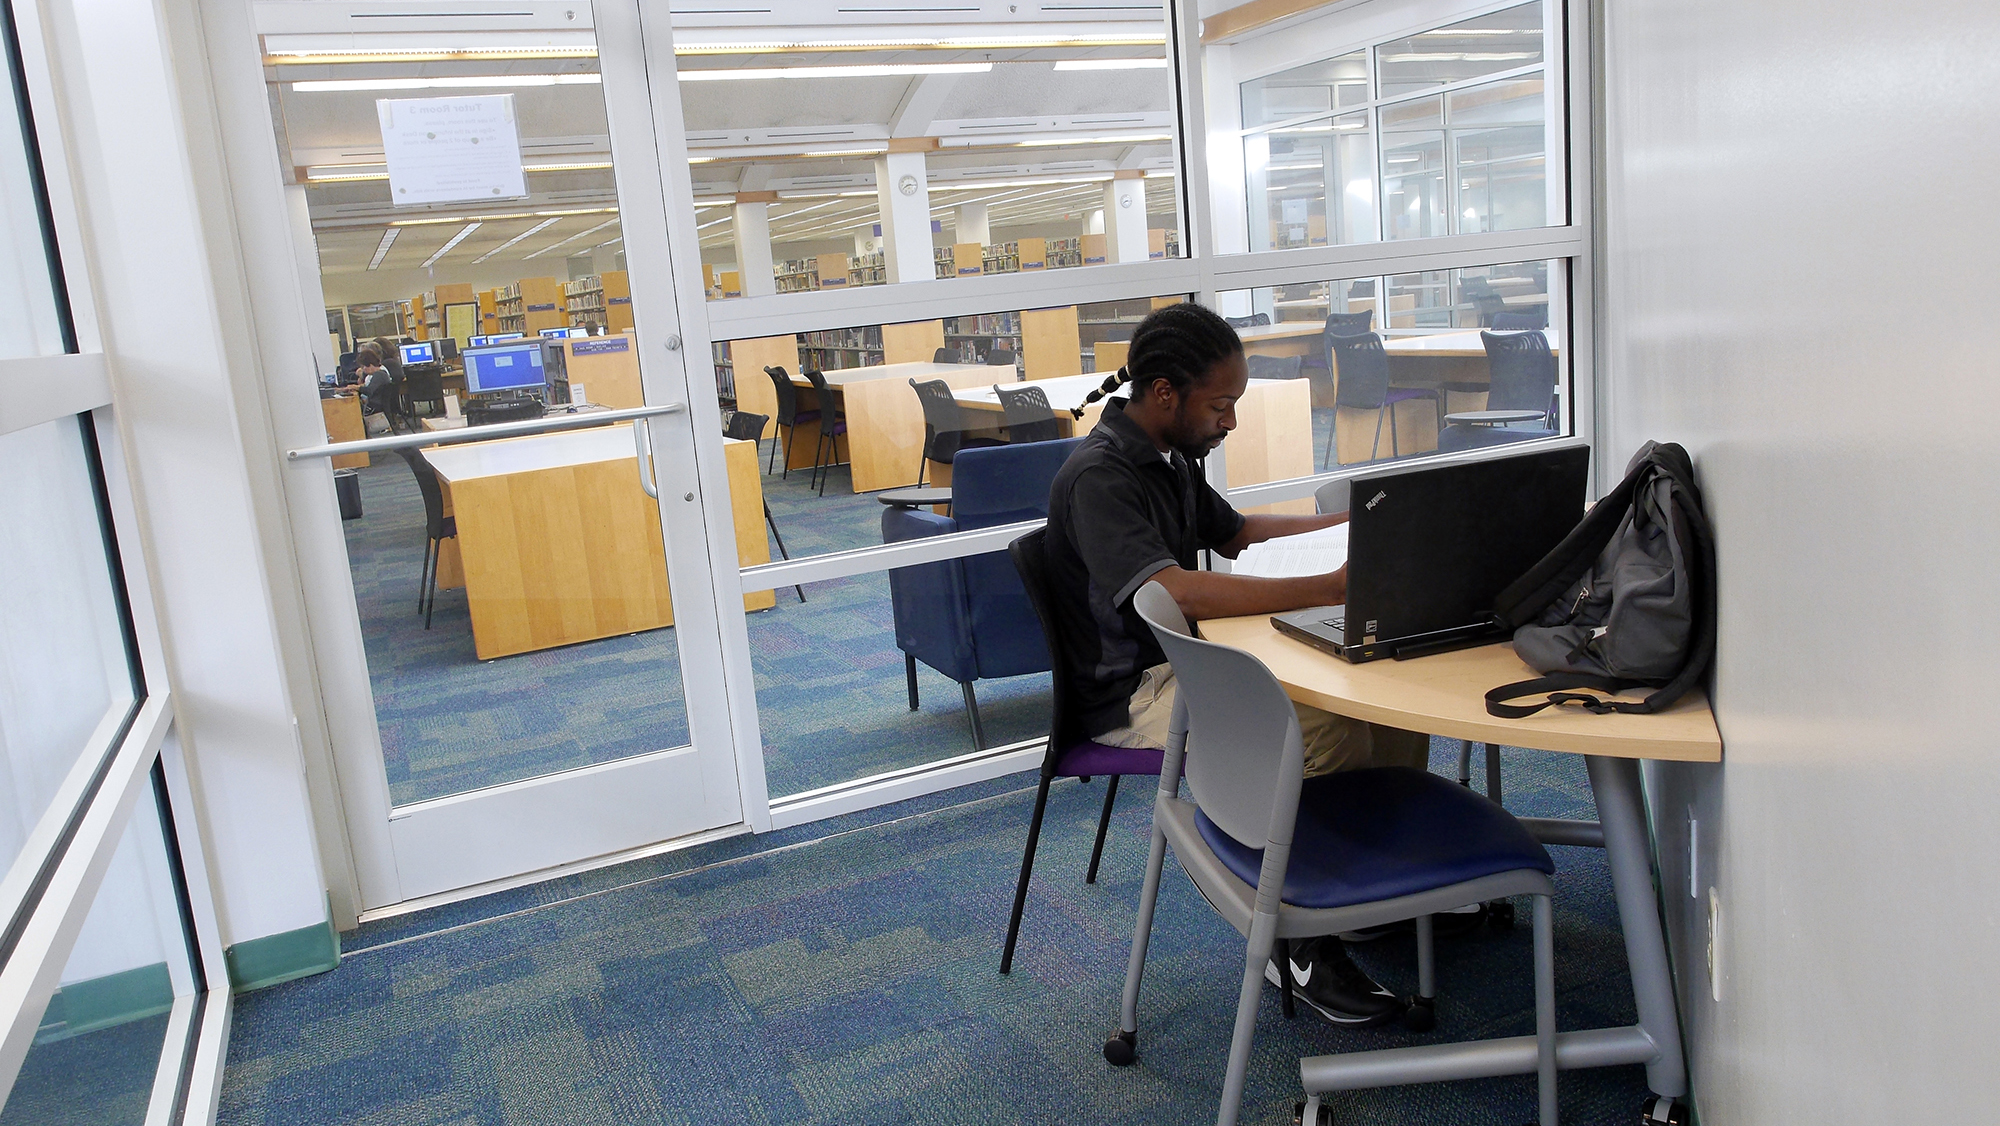 About Us - Welcome to Broward College North Campus Library ...